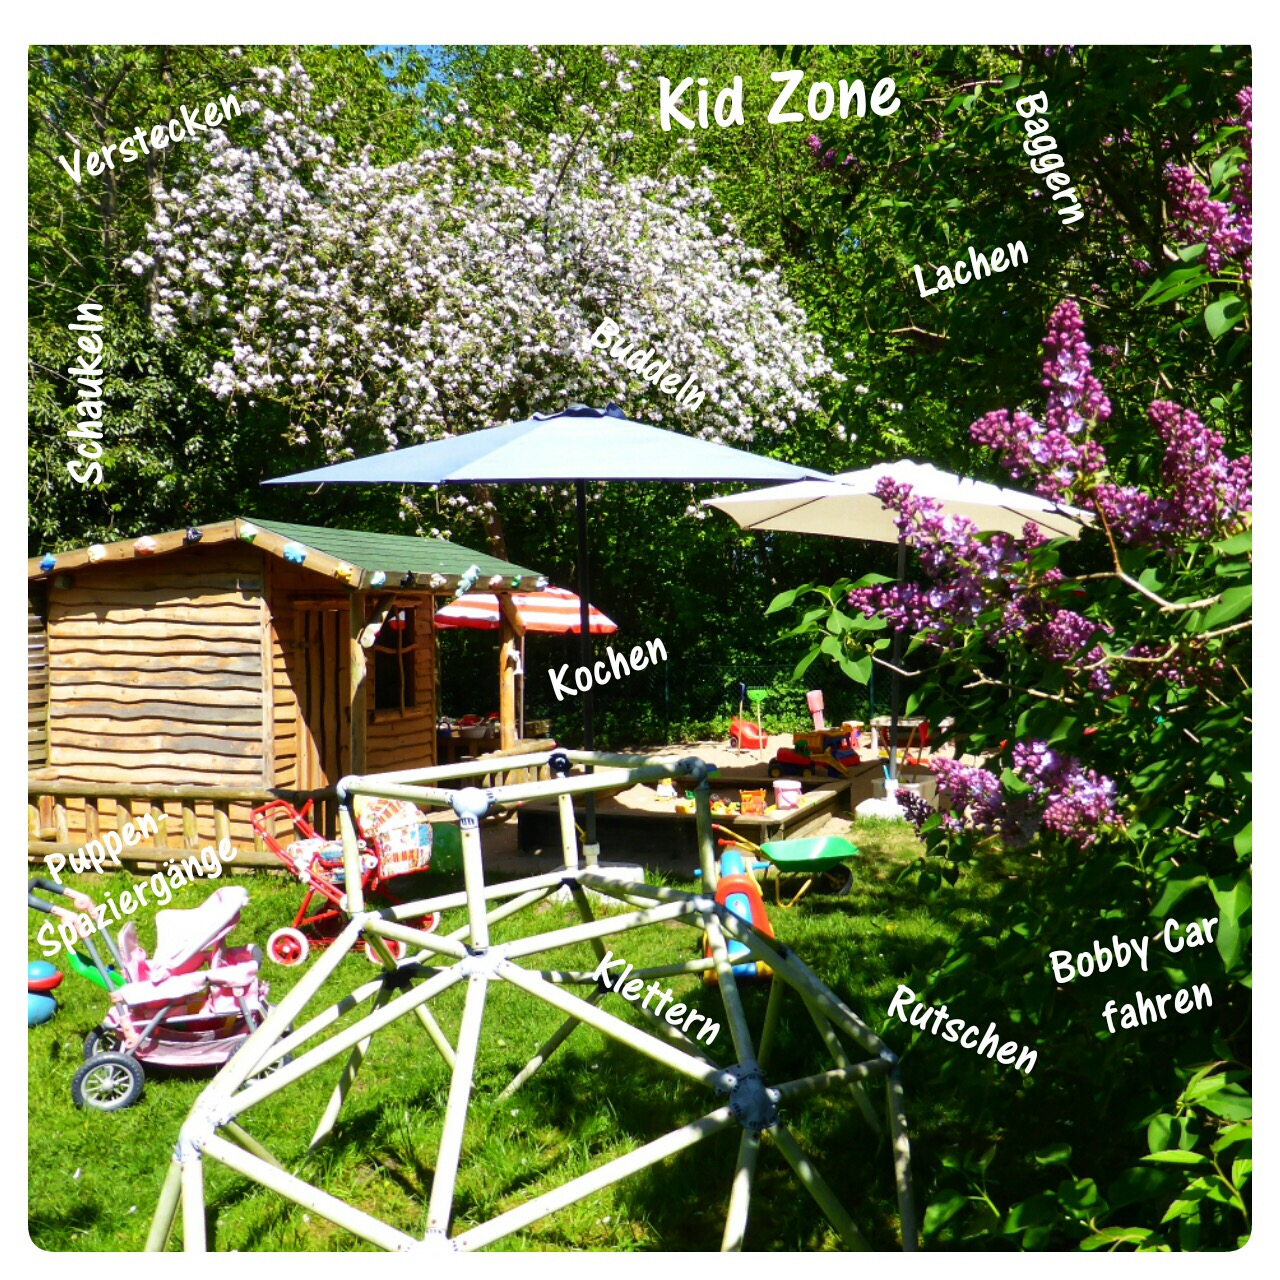 Kita Kid Zone Kinderbetreuung 2018